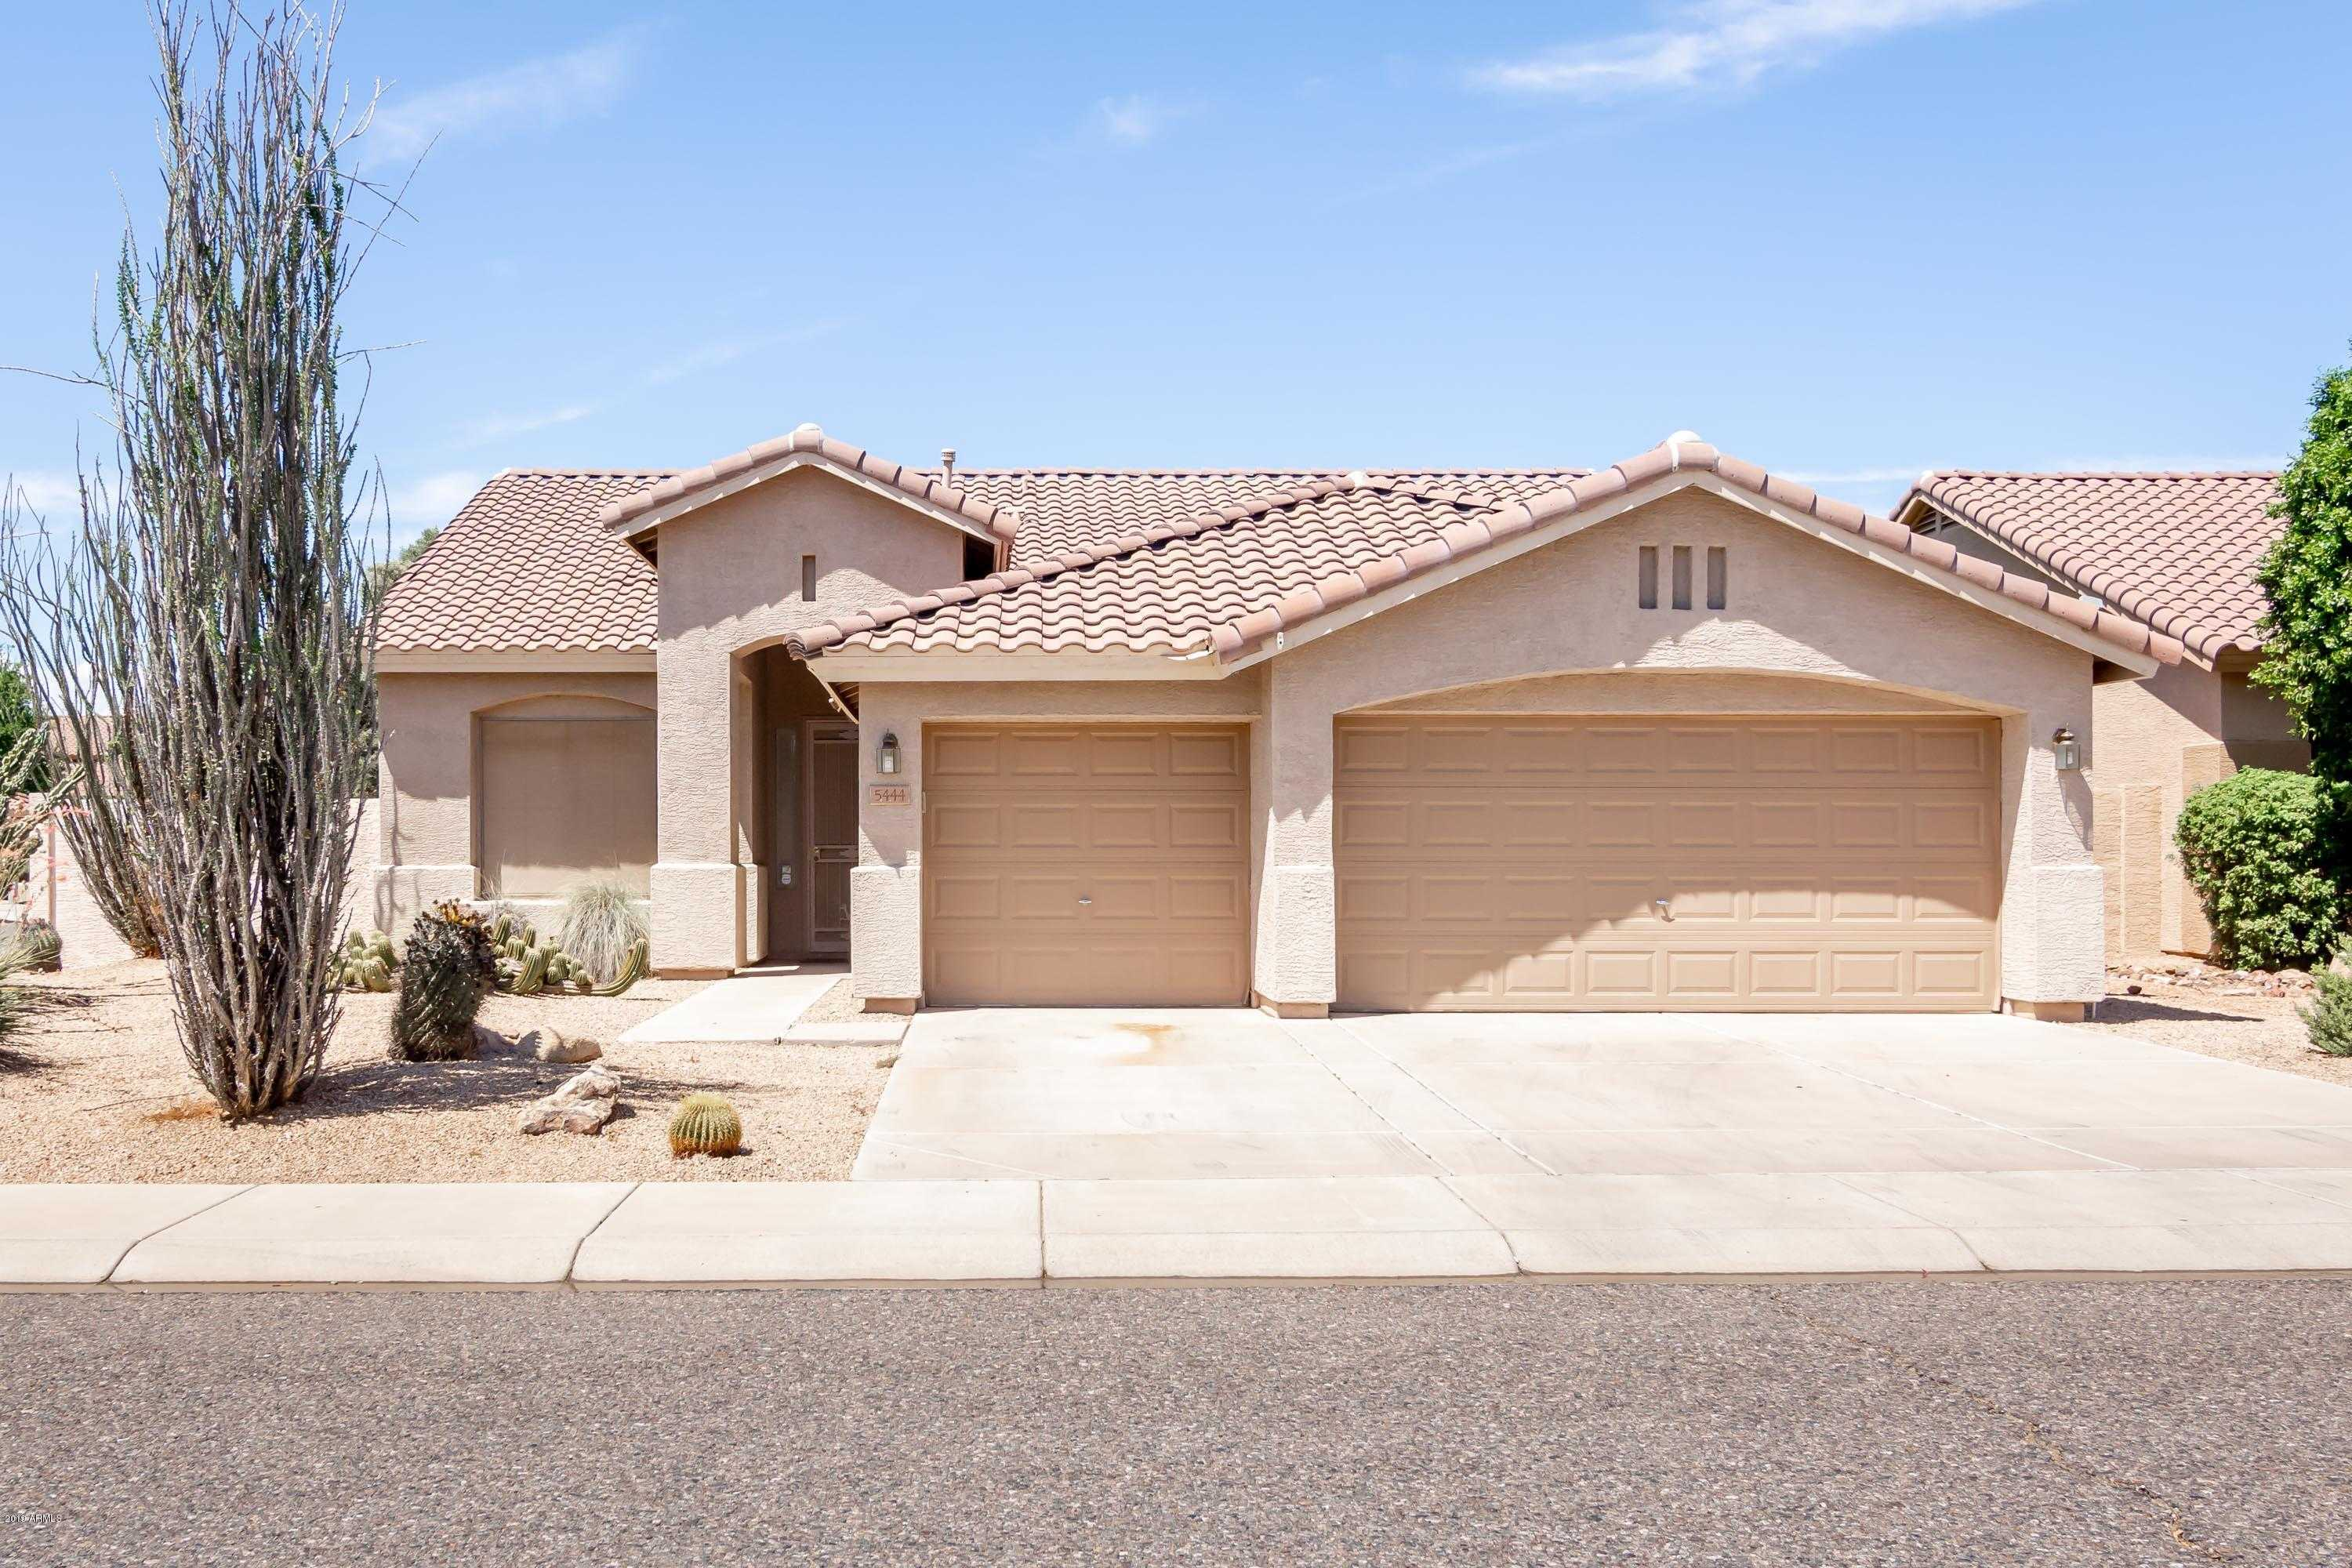 $339,900 - 3Br/2Ba - Home for Sale in Touchstone, Glendale